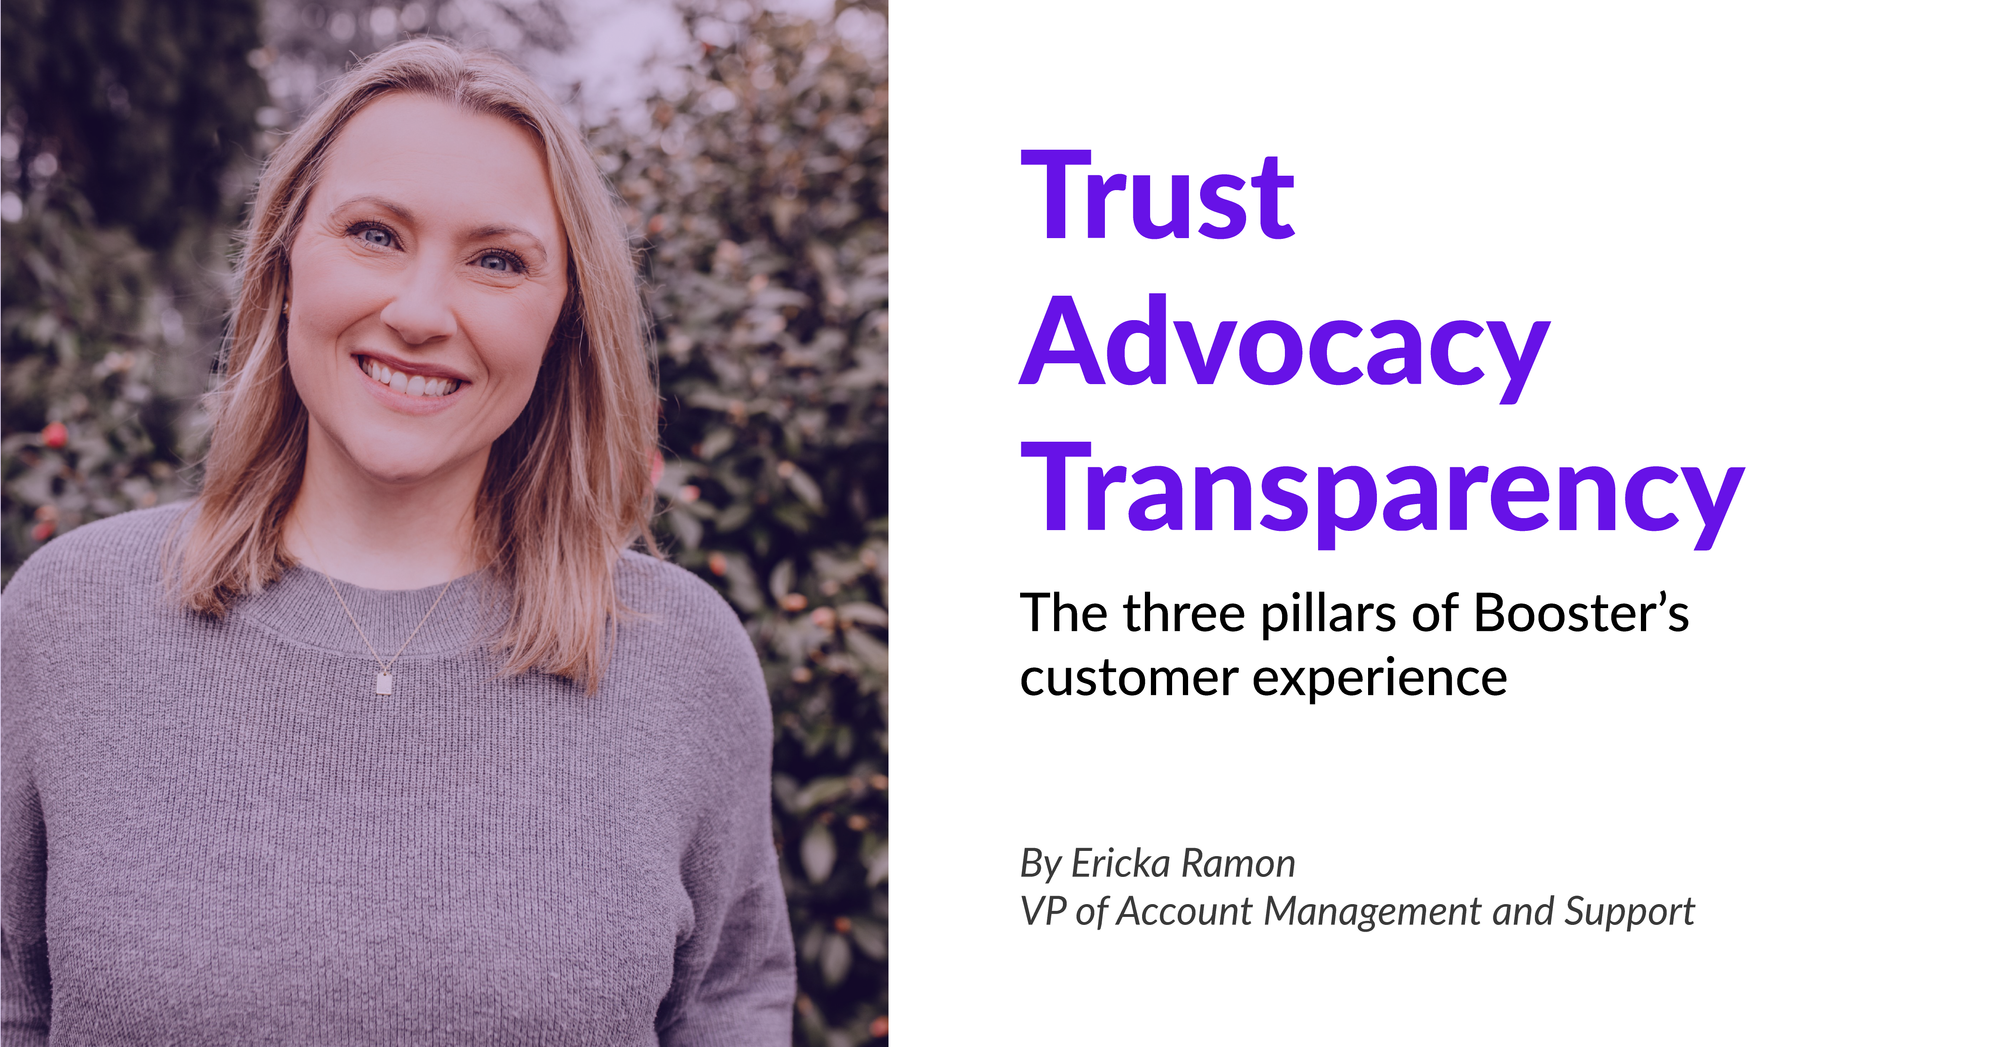 Trust, Advocacy, Transparency - 3 Pillars of Booster's Customer Experience